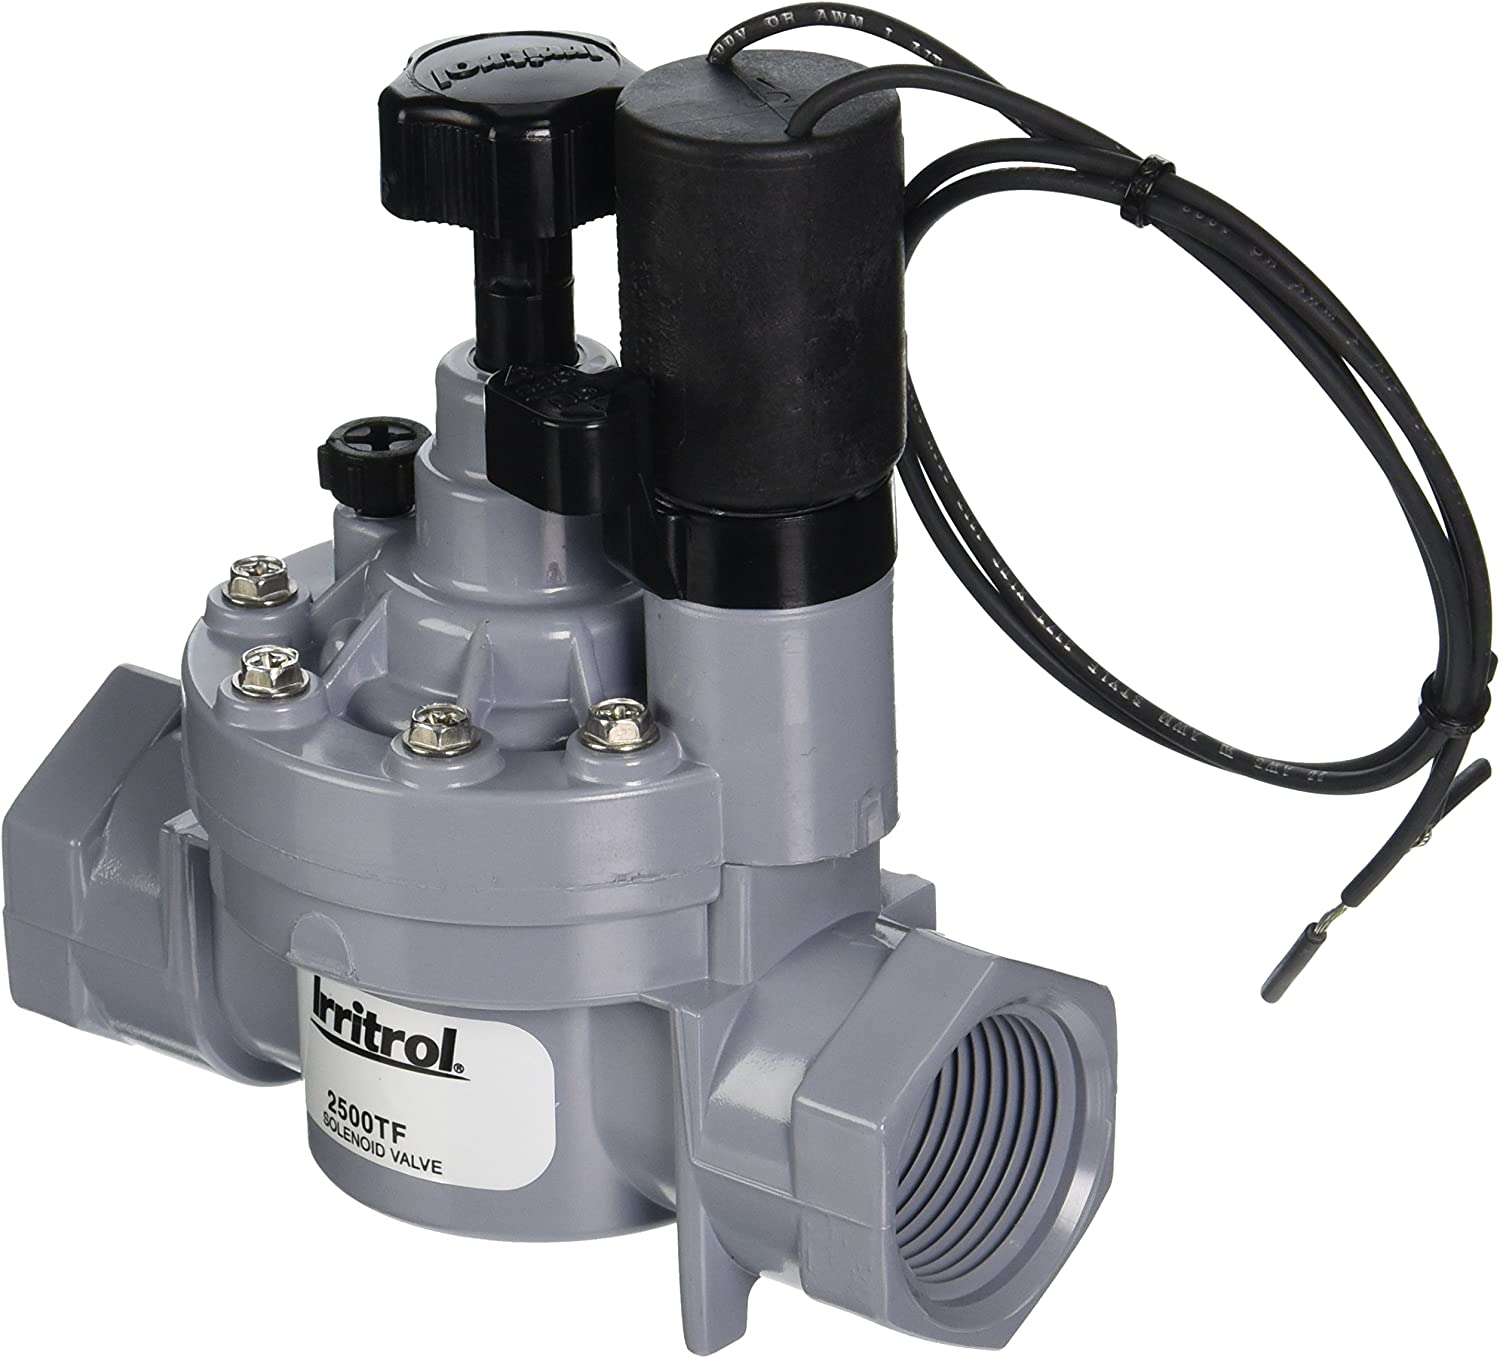 Irritrol 2500TF Globe Price reduction Valve Threaded Flow Control with Max 44% OFF 1